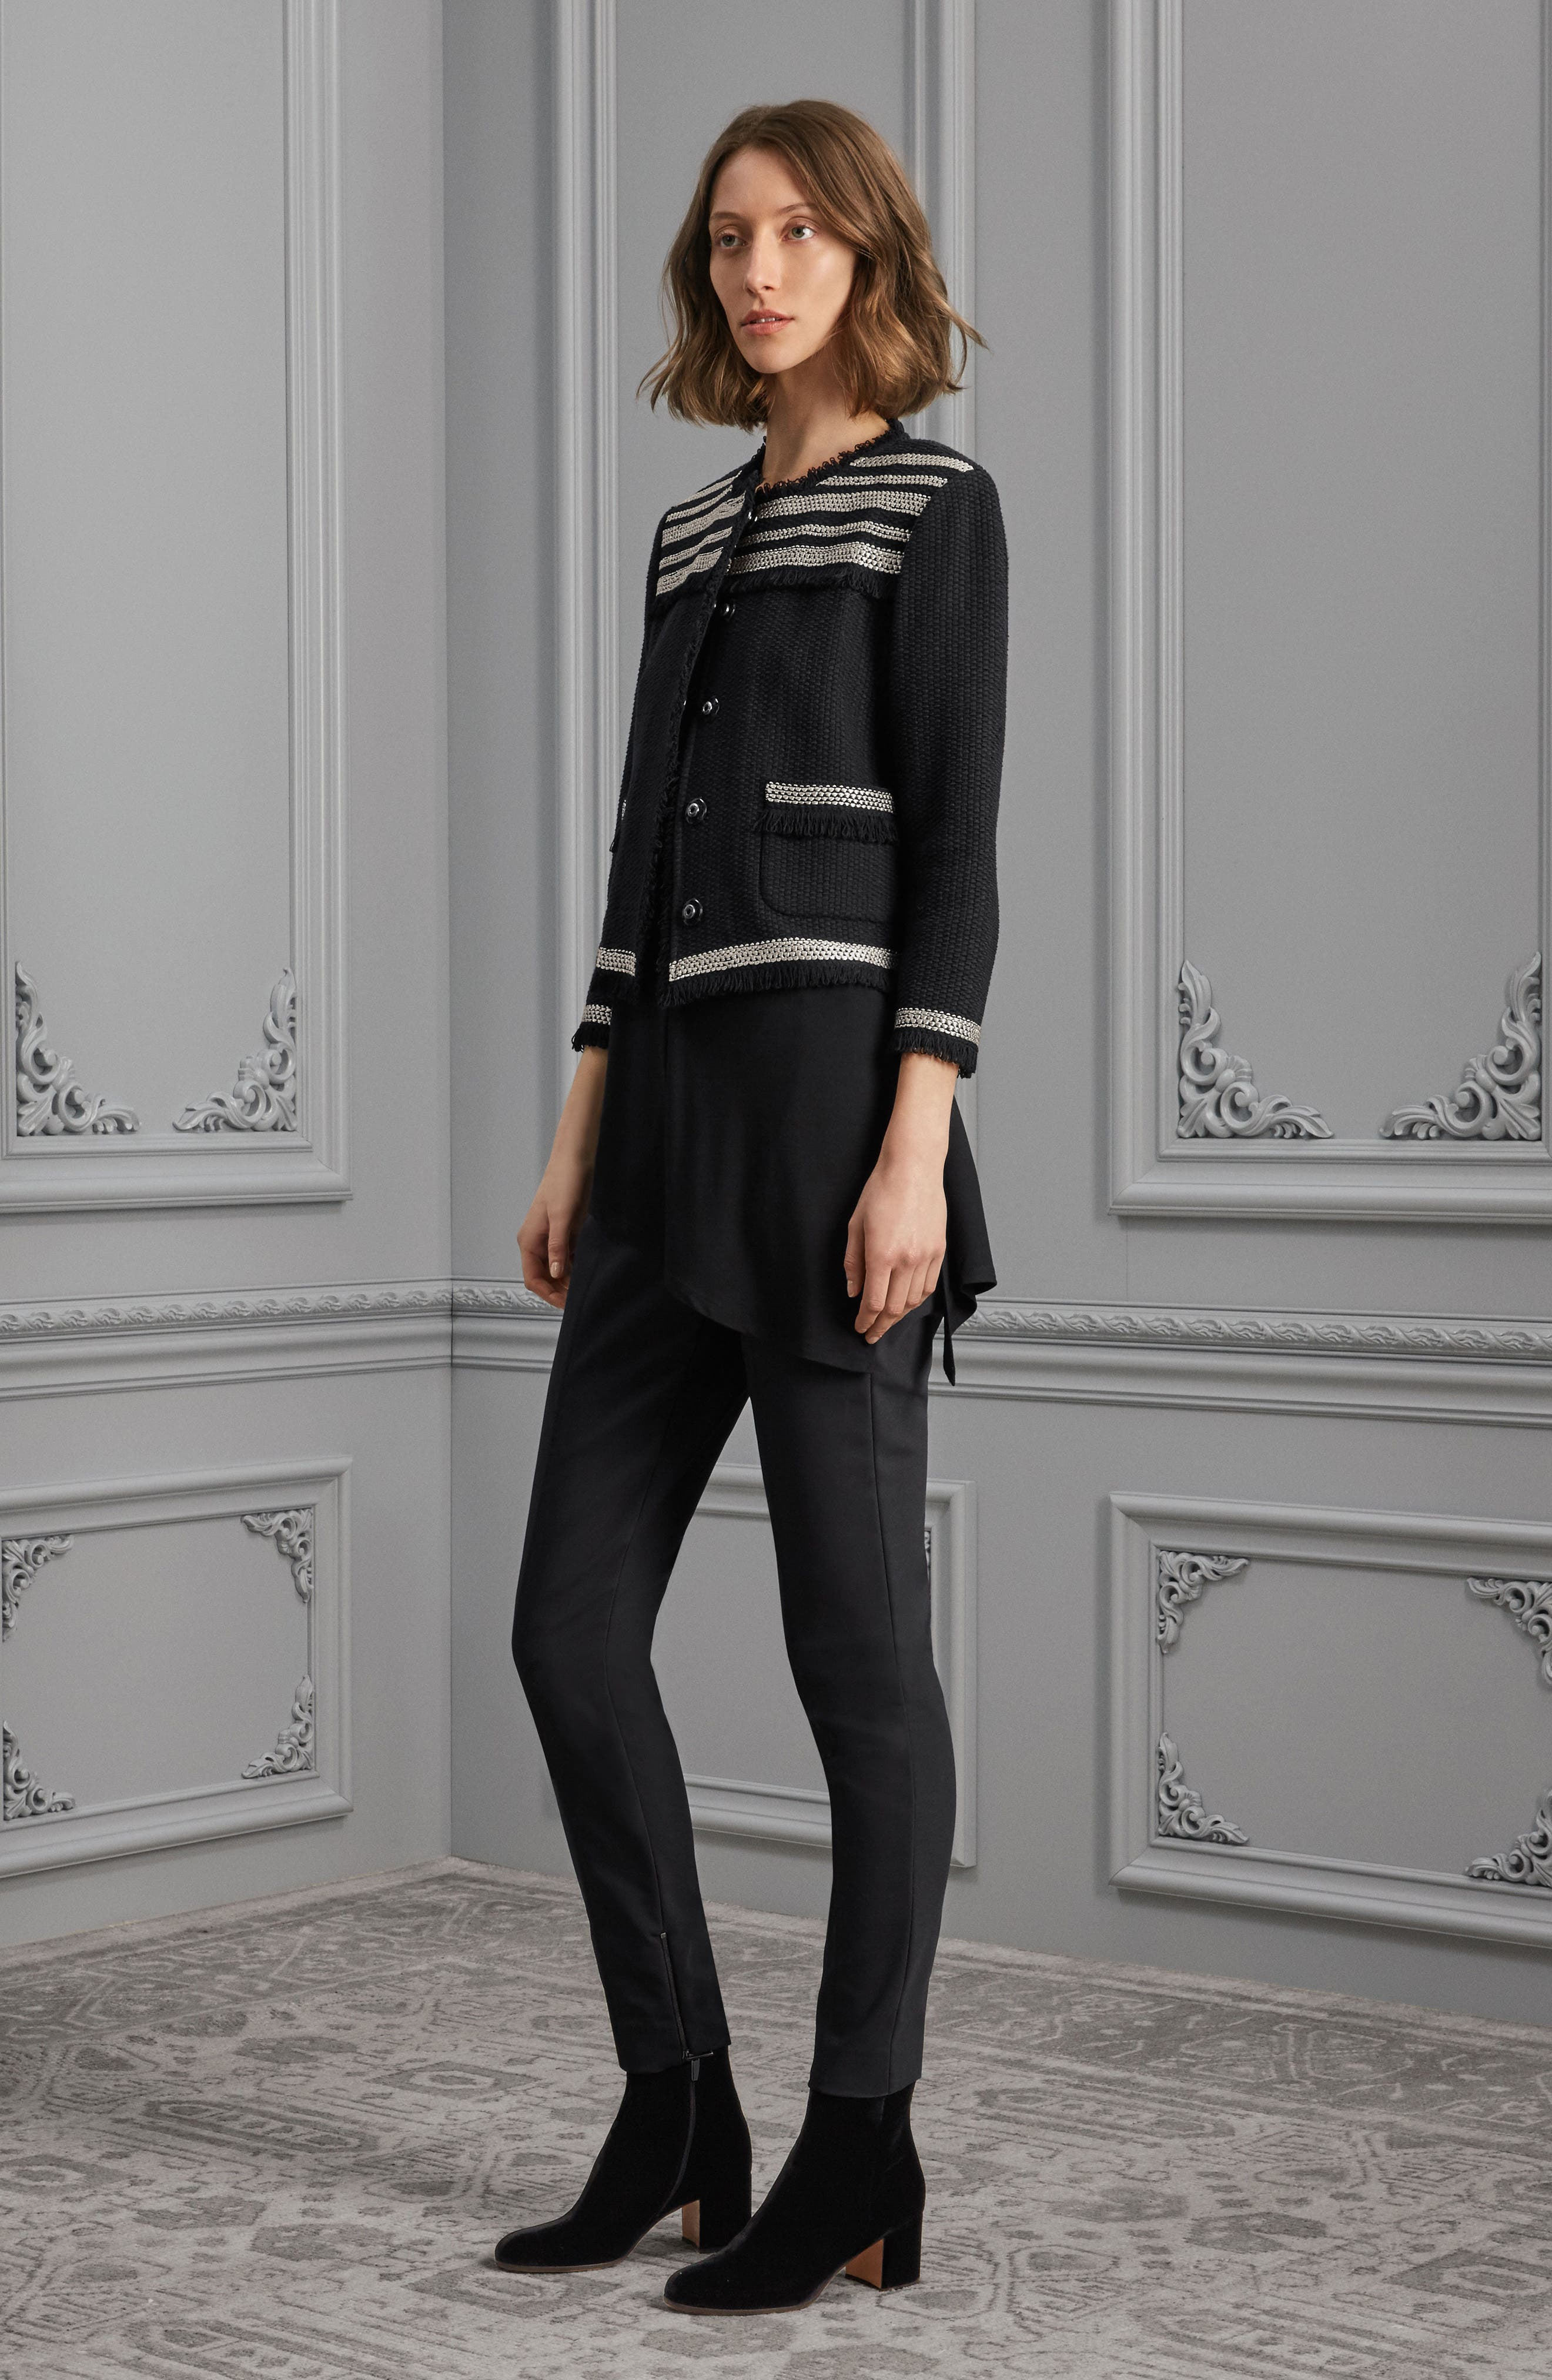 St. John Collection Jacket, Top & Leggings Outfit with Accessories